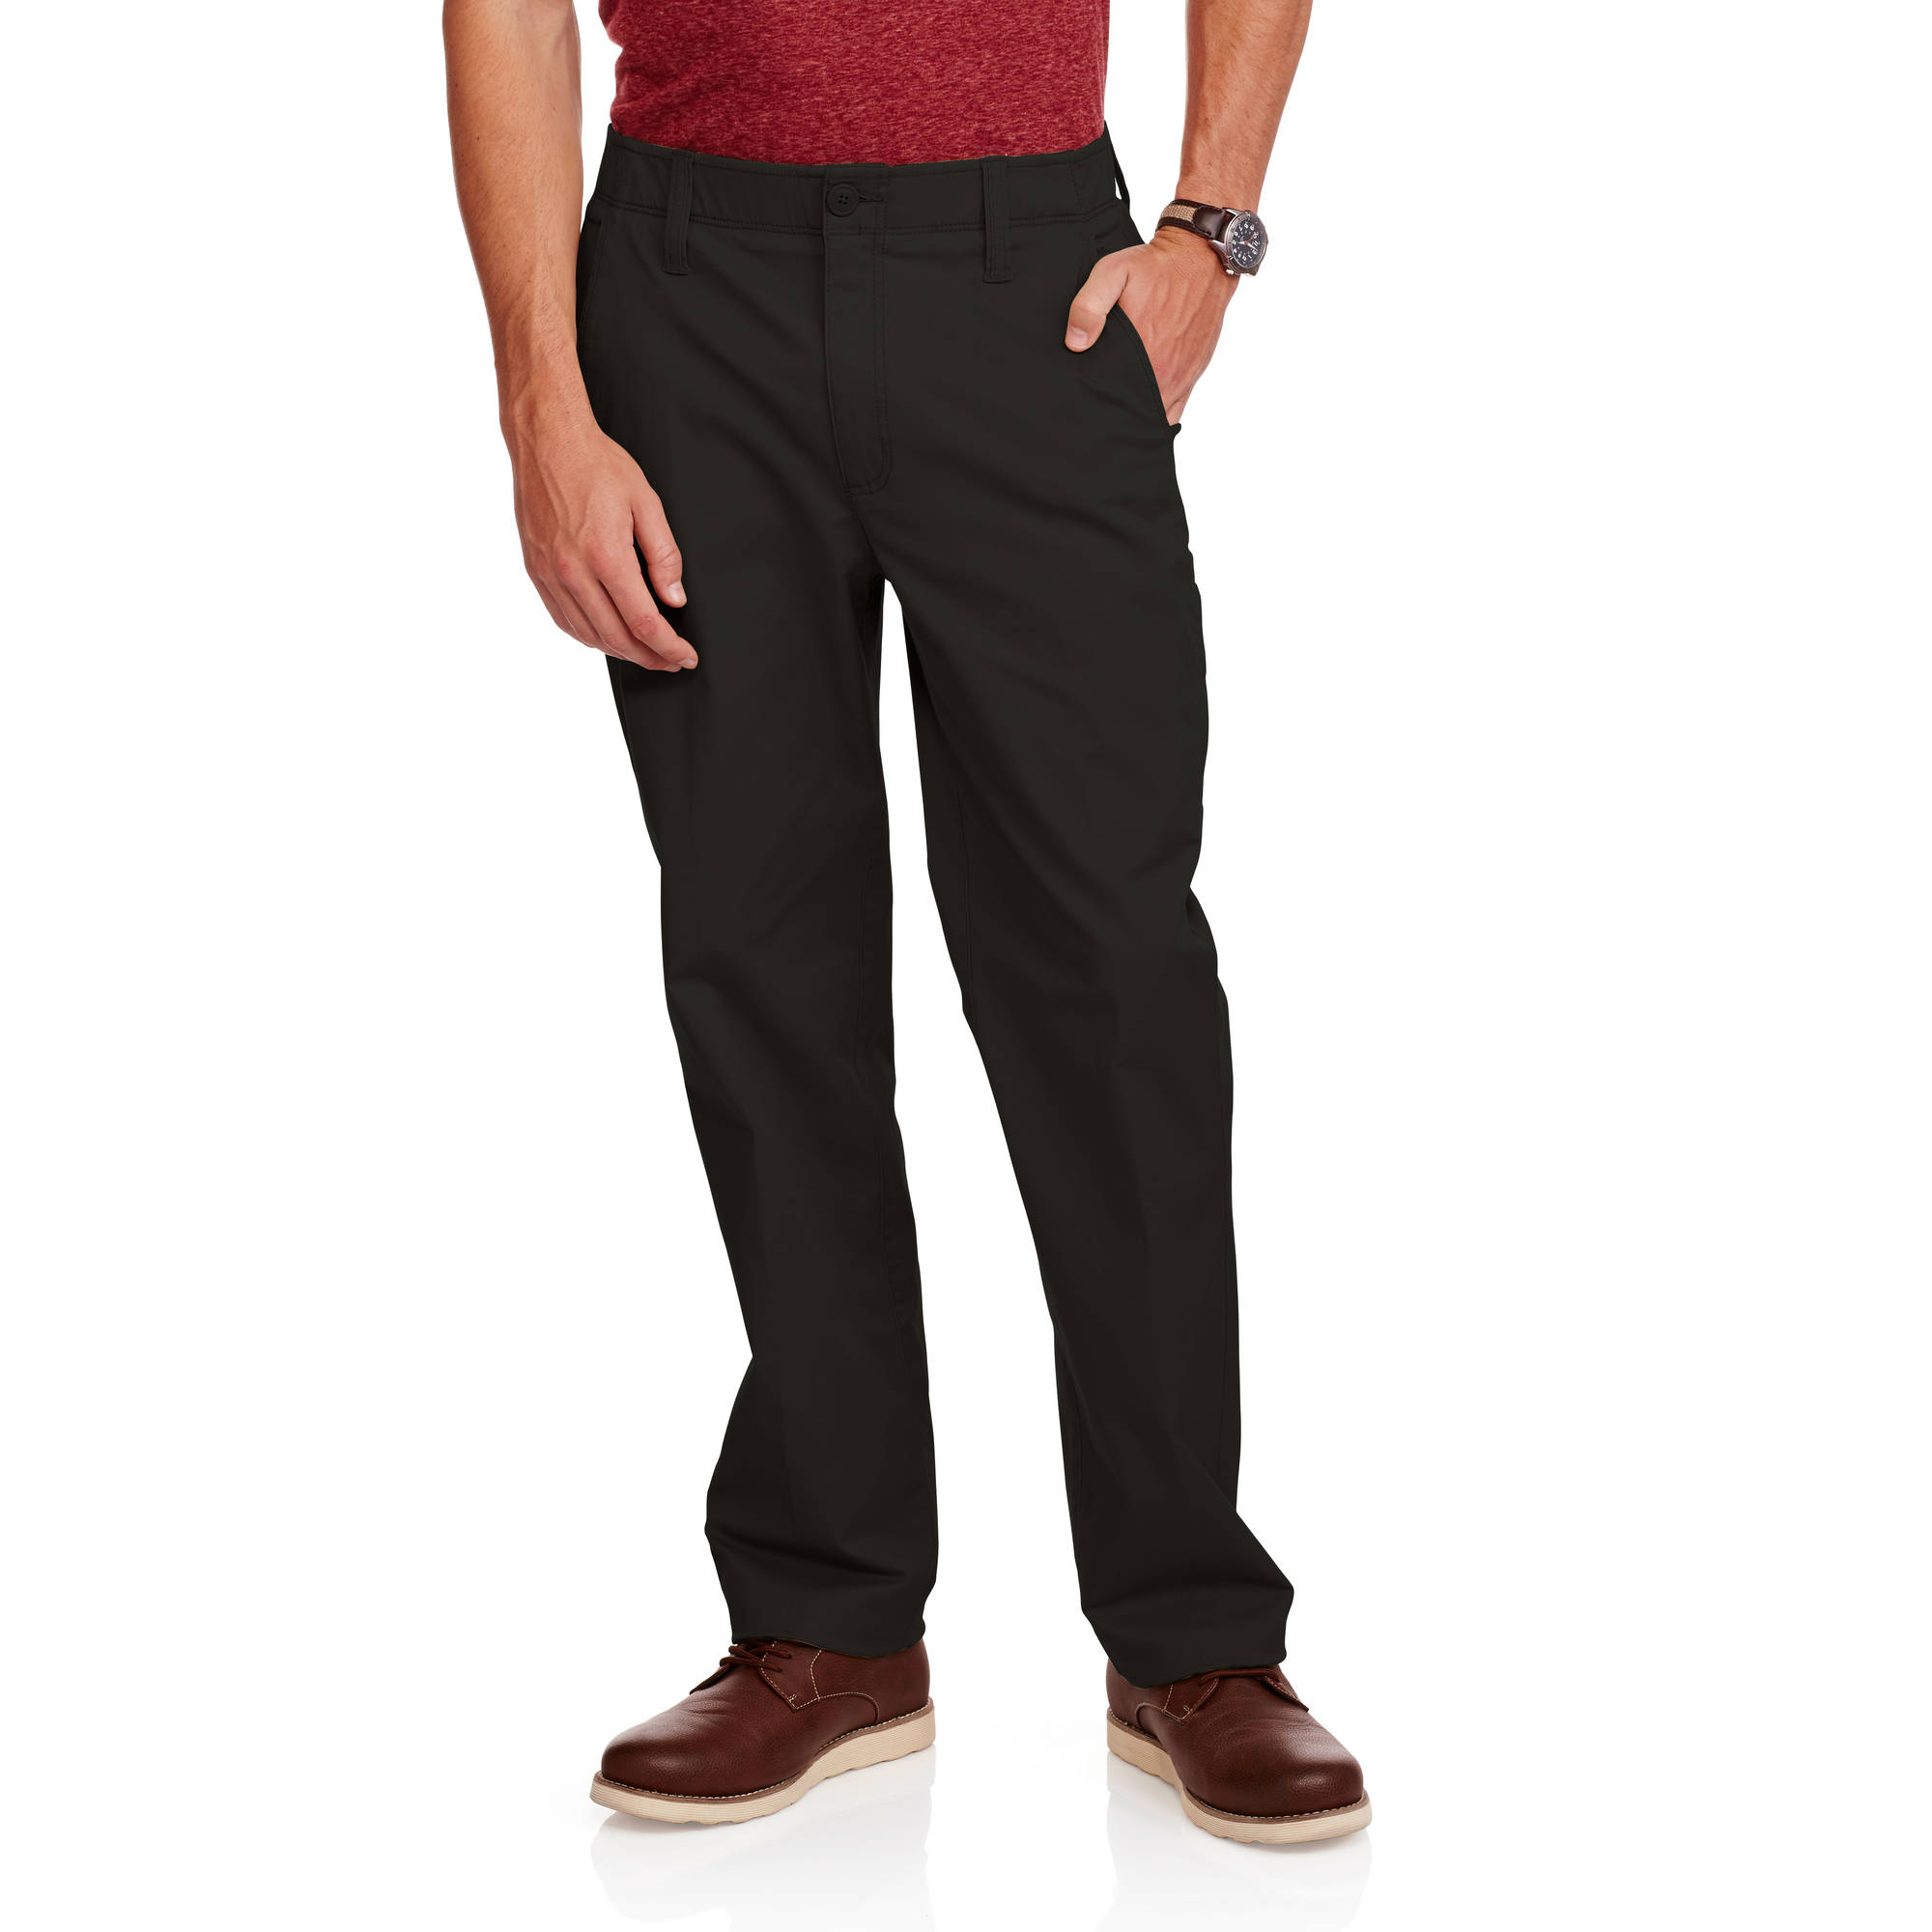 Faded Glory Big Men's Outdoor Performance Pant